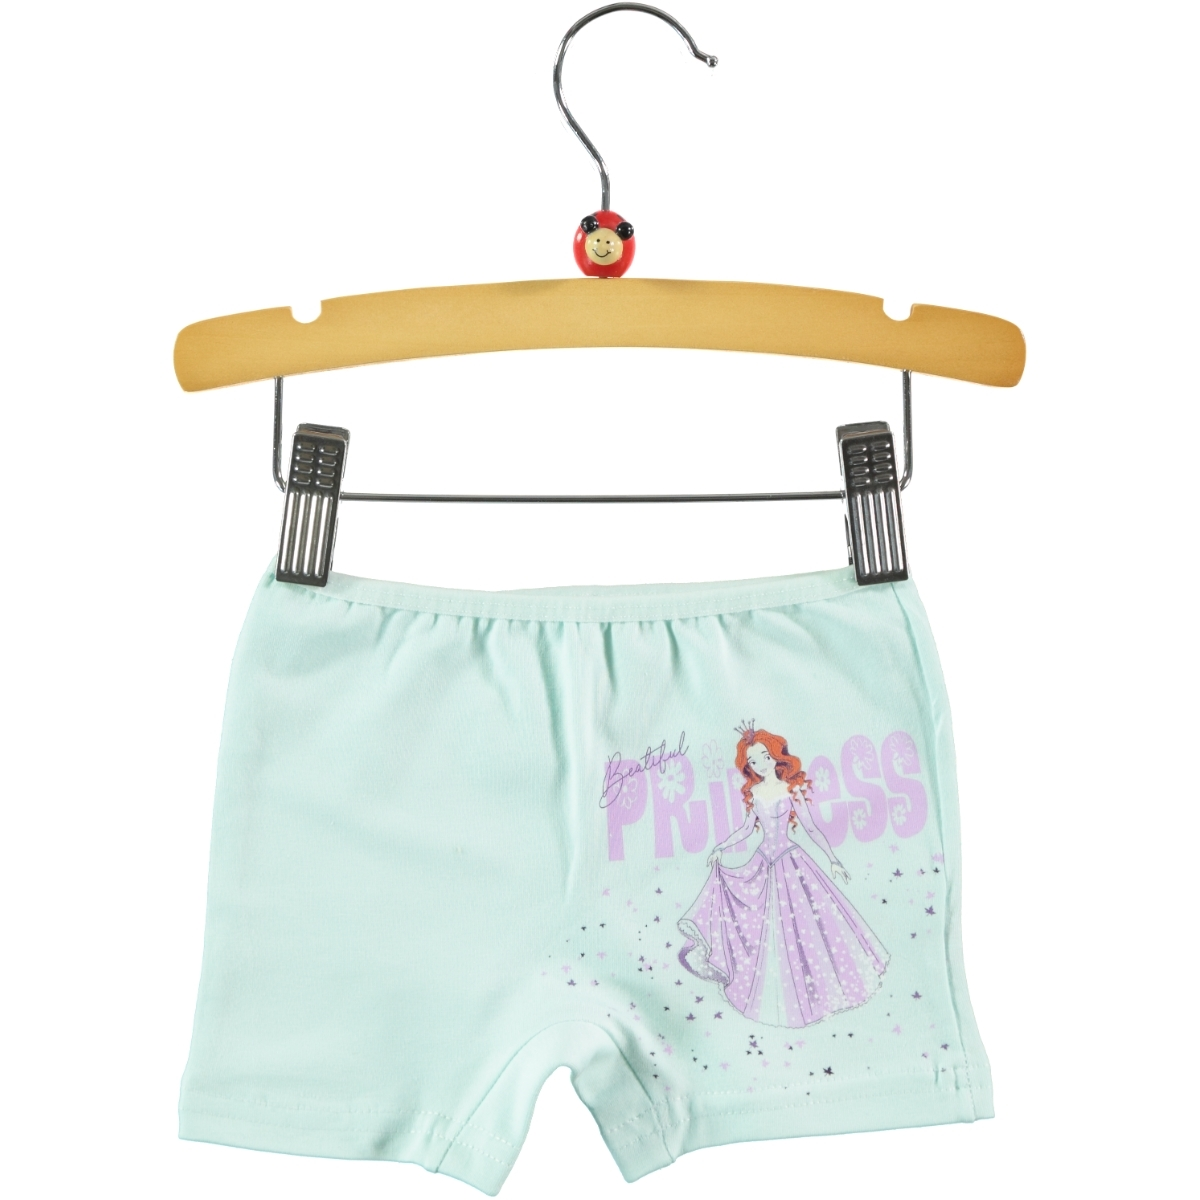 Donella Girl Mint Green Boy Shorts Ages 2-10